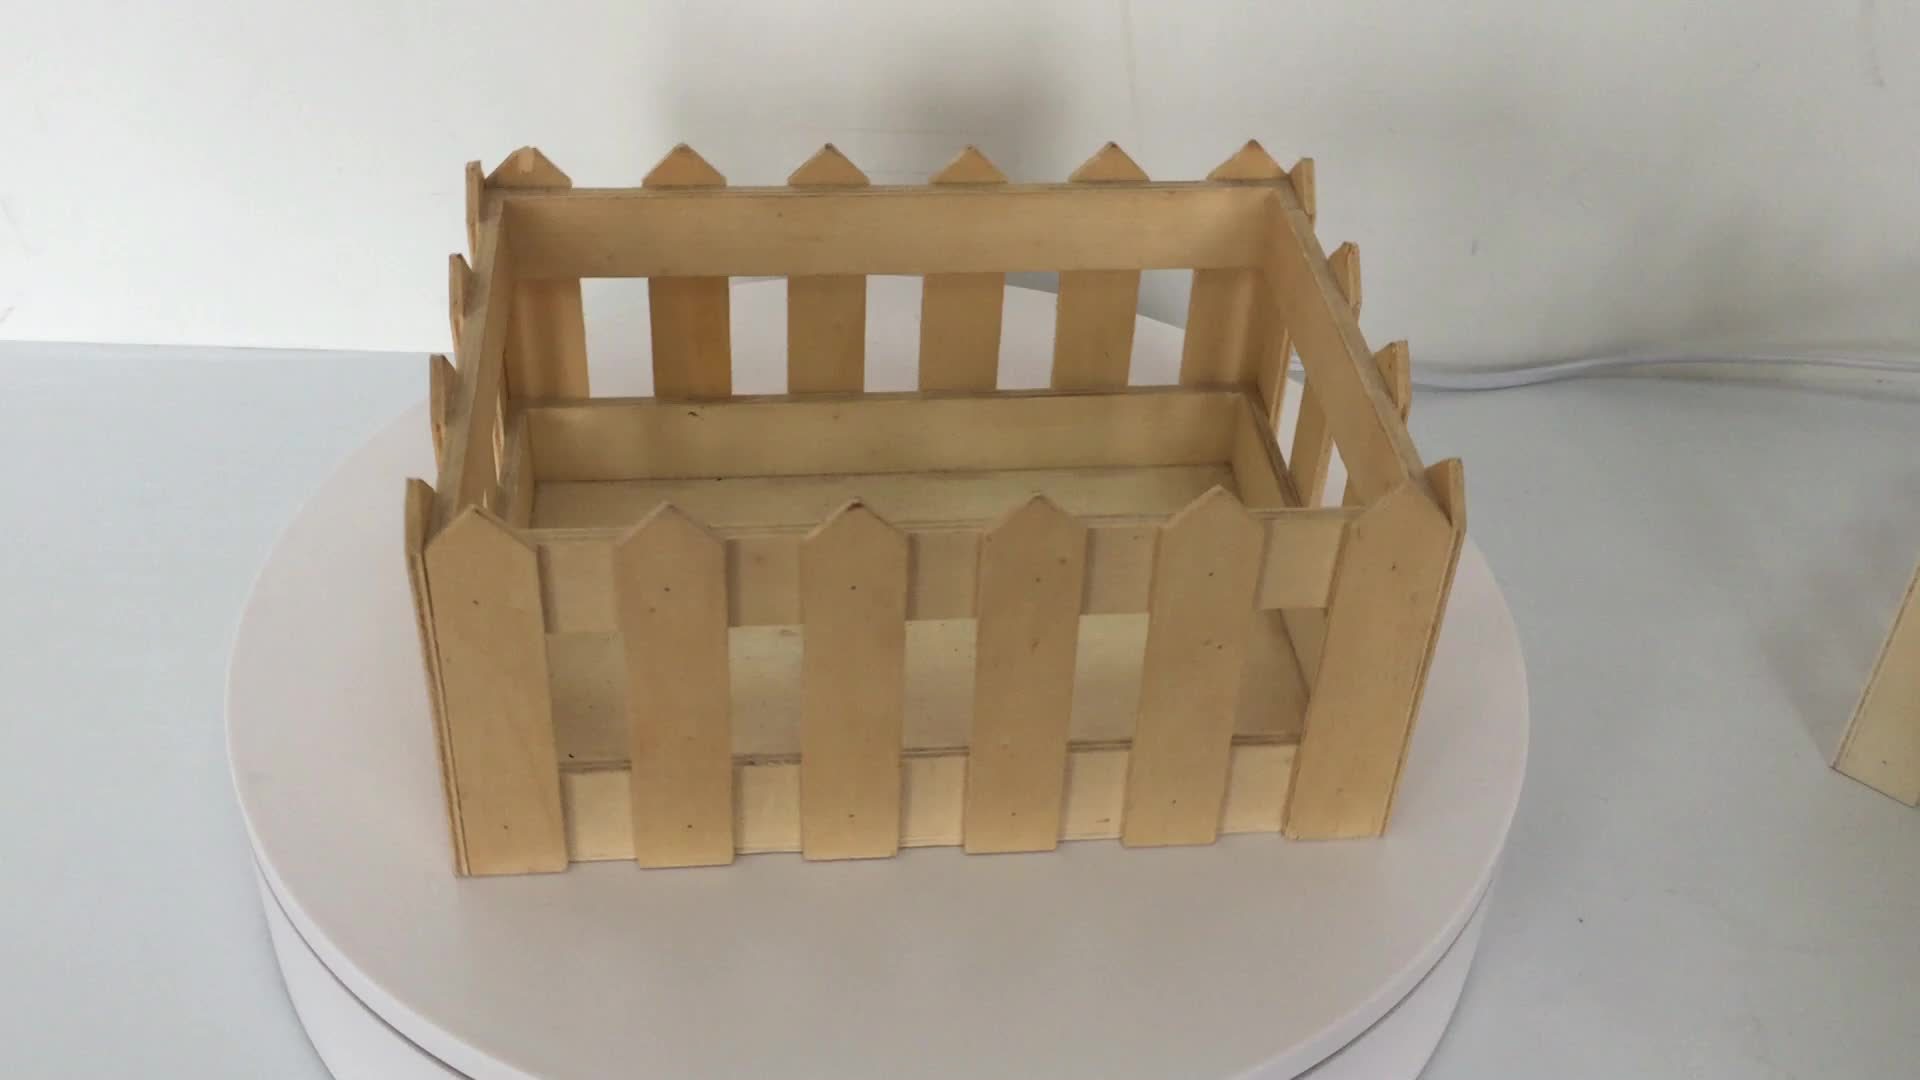 Wooden collapsible Storage boxes crates for stacking (wood, 3 units)